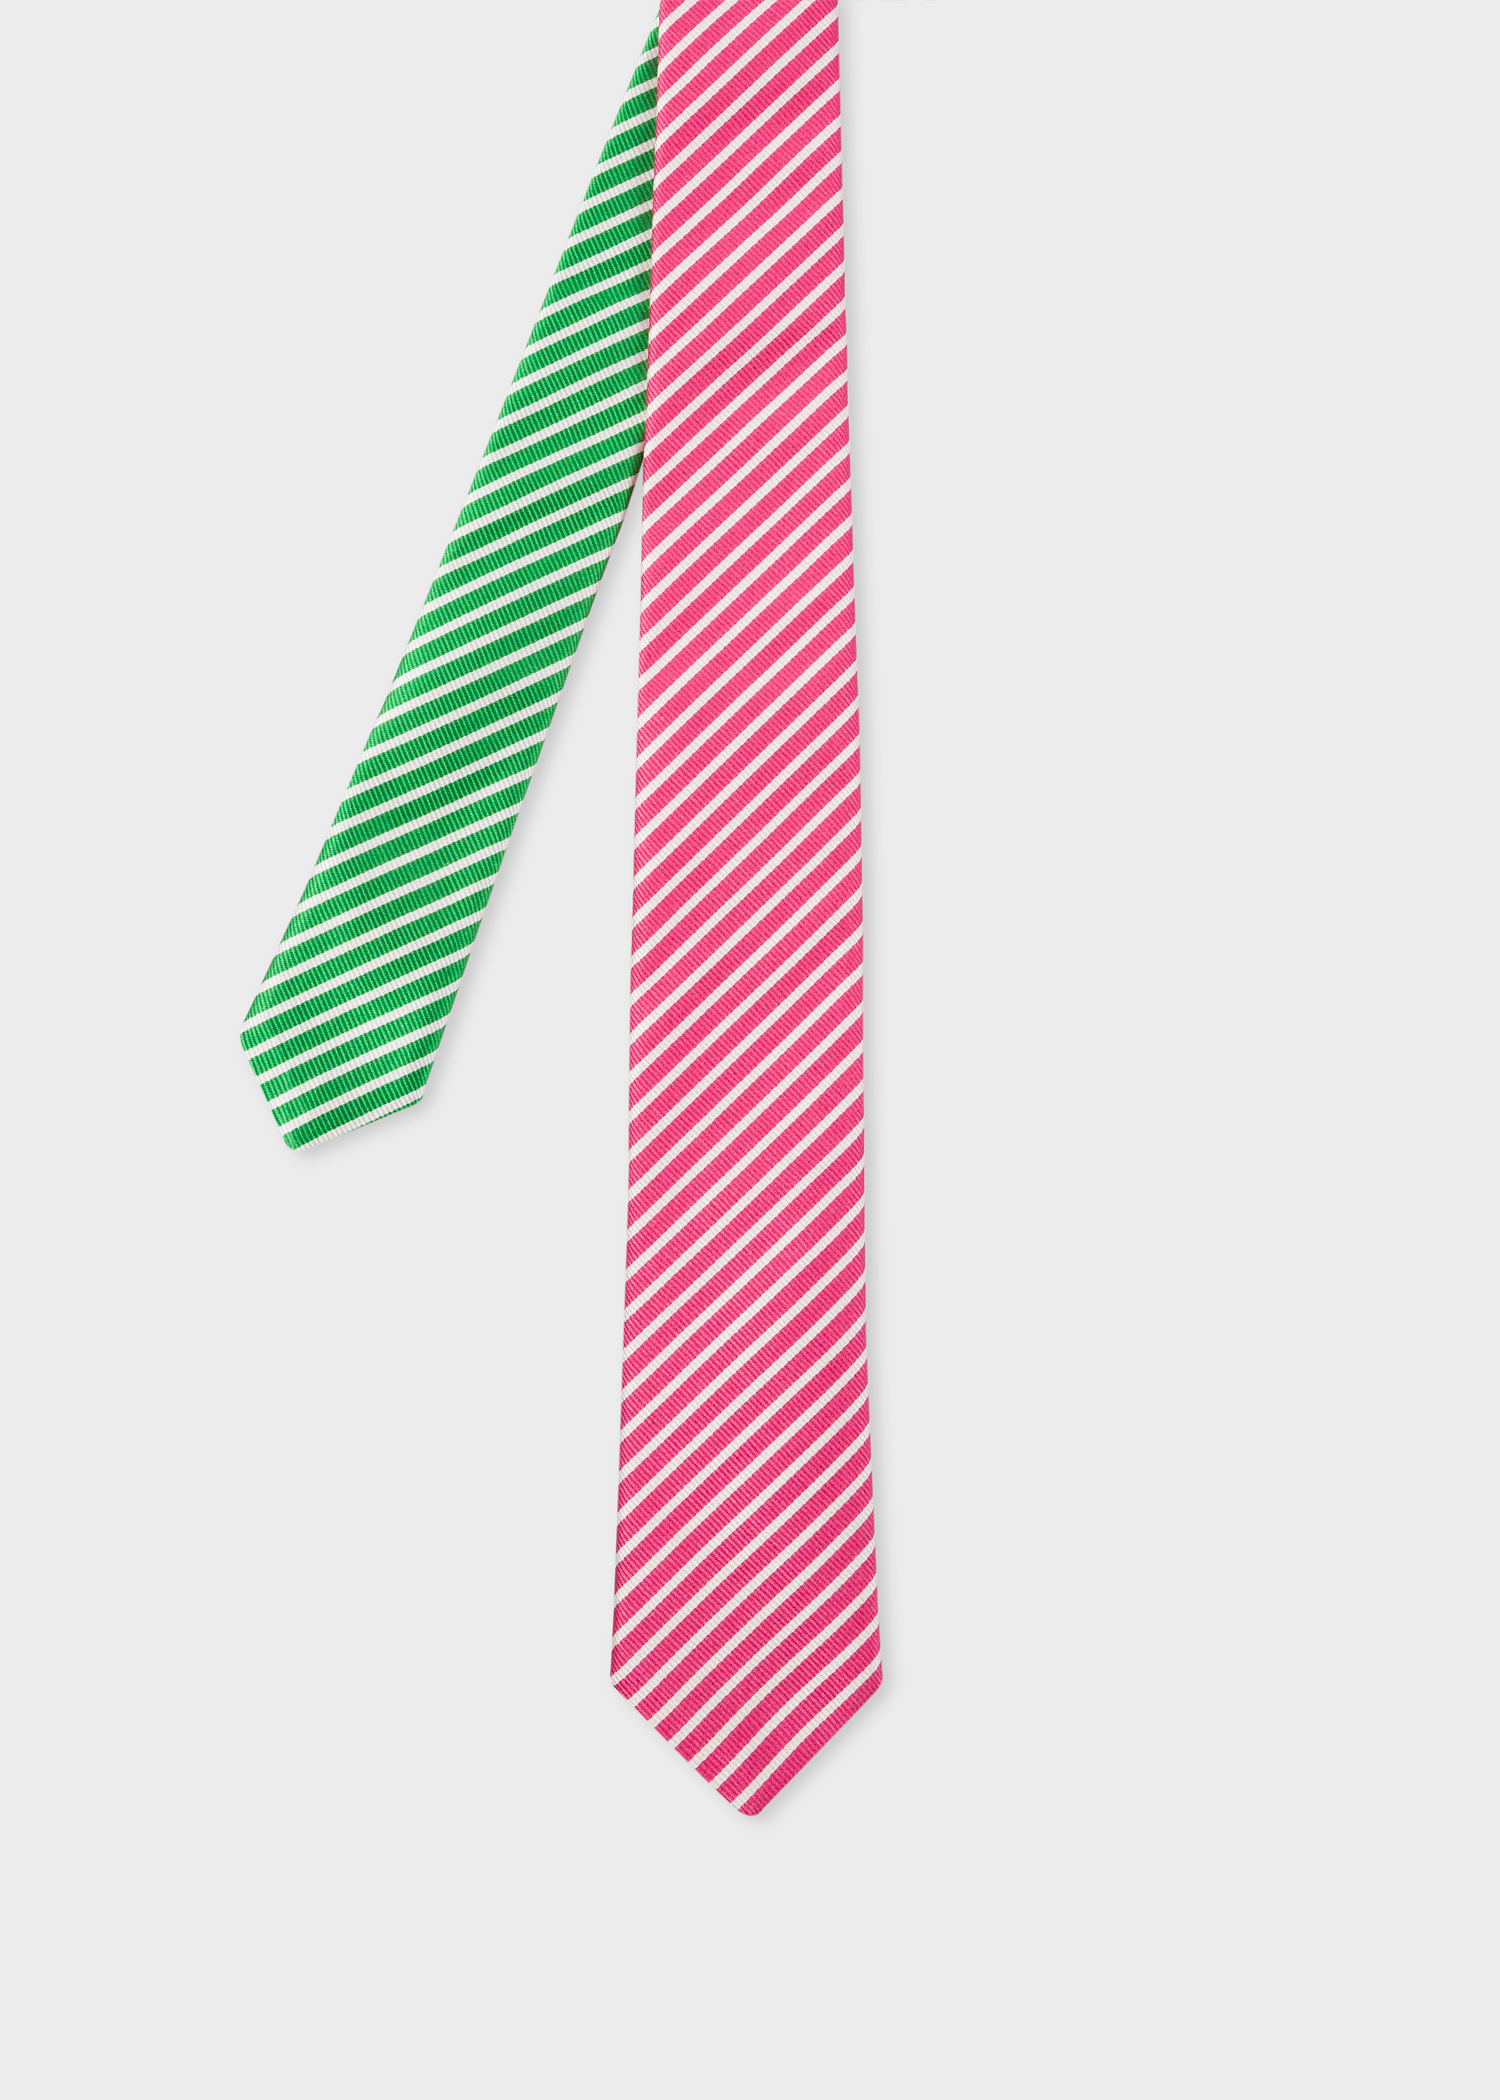 9c7934be42d3 Front View - Men's Pink And Green Diagonal Stripe Narrow Silk Tie Paul Smith